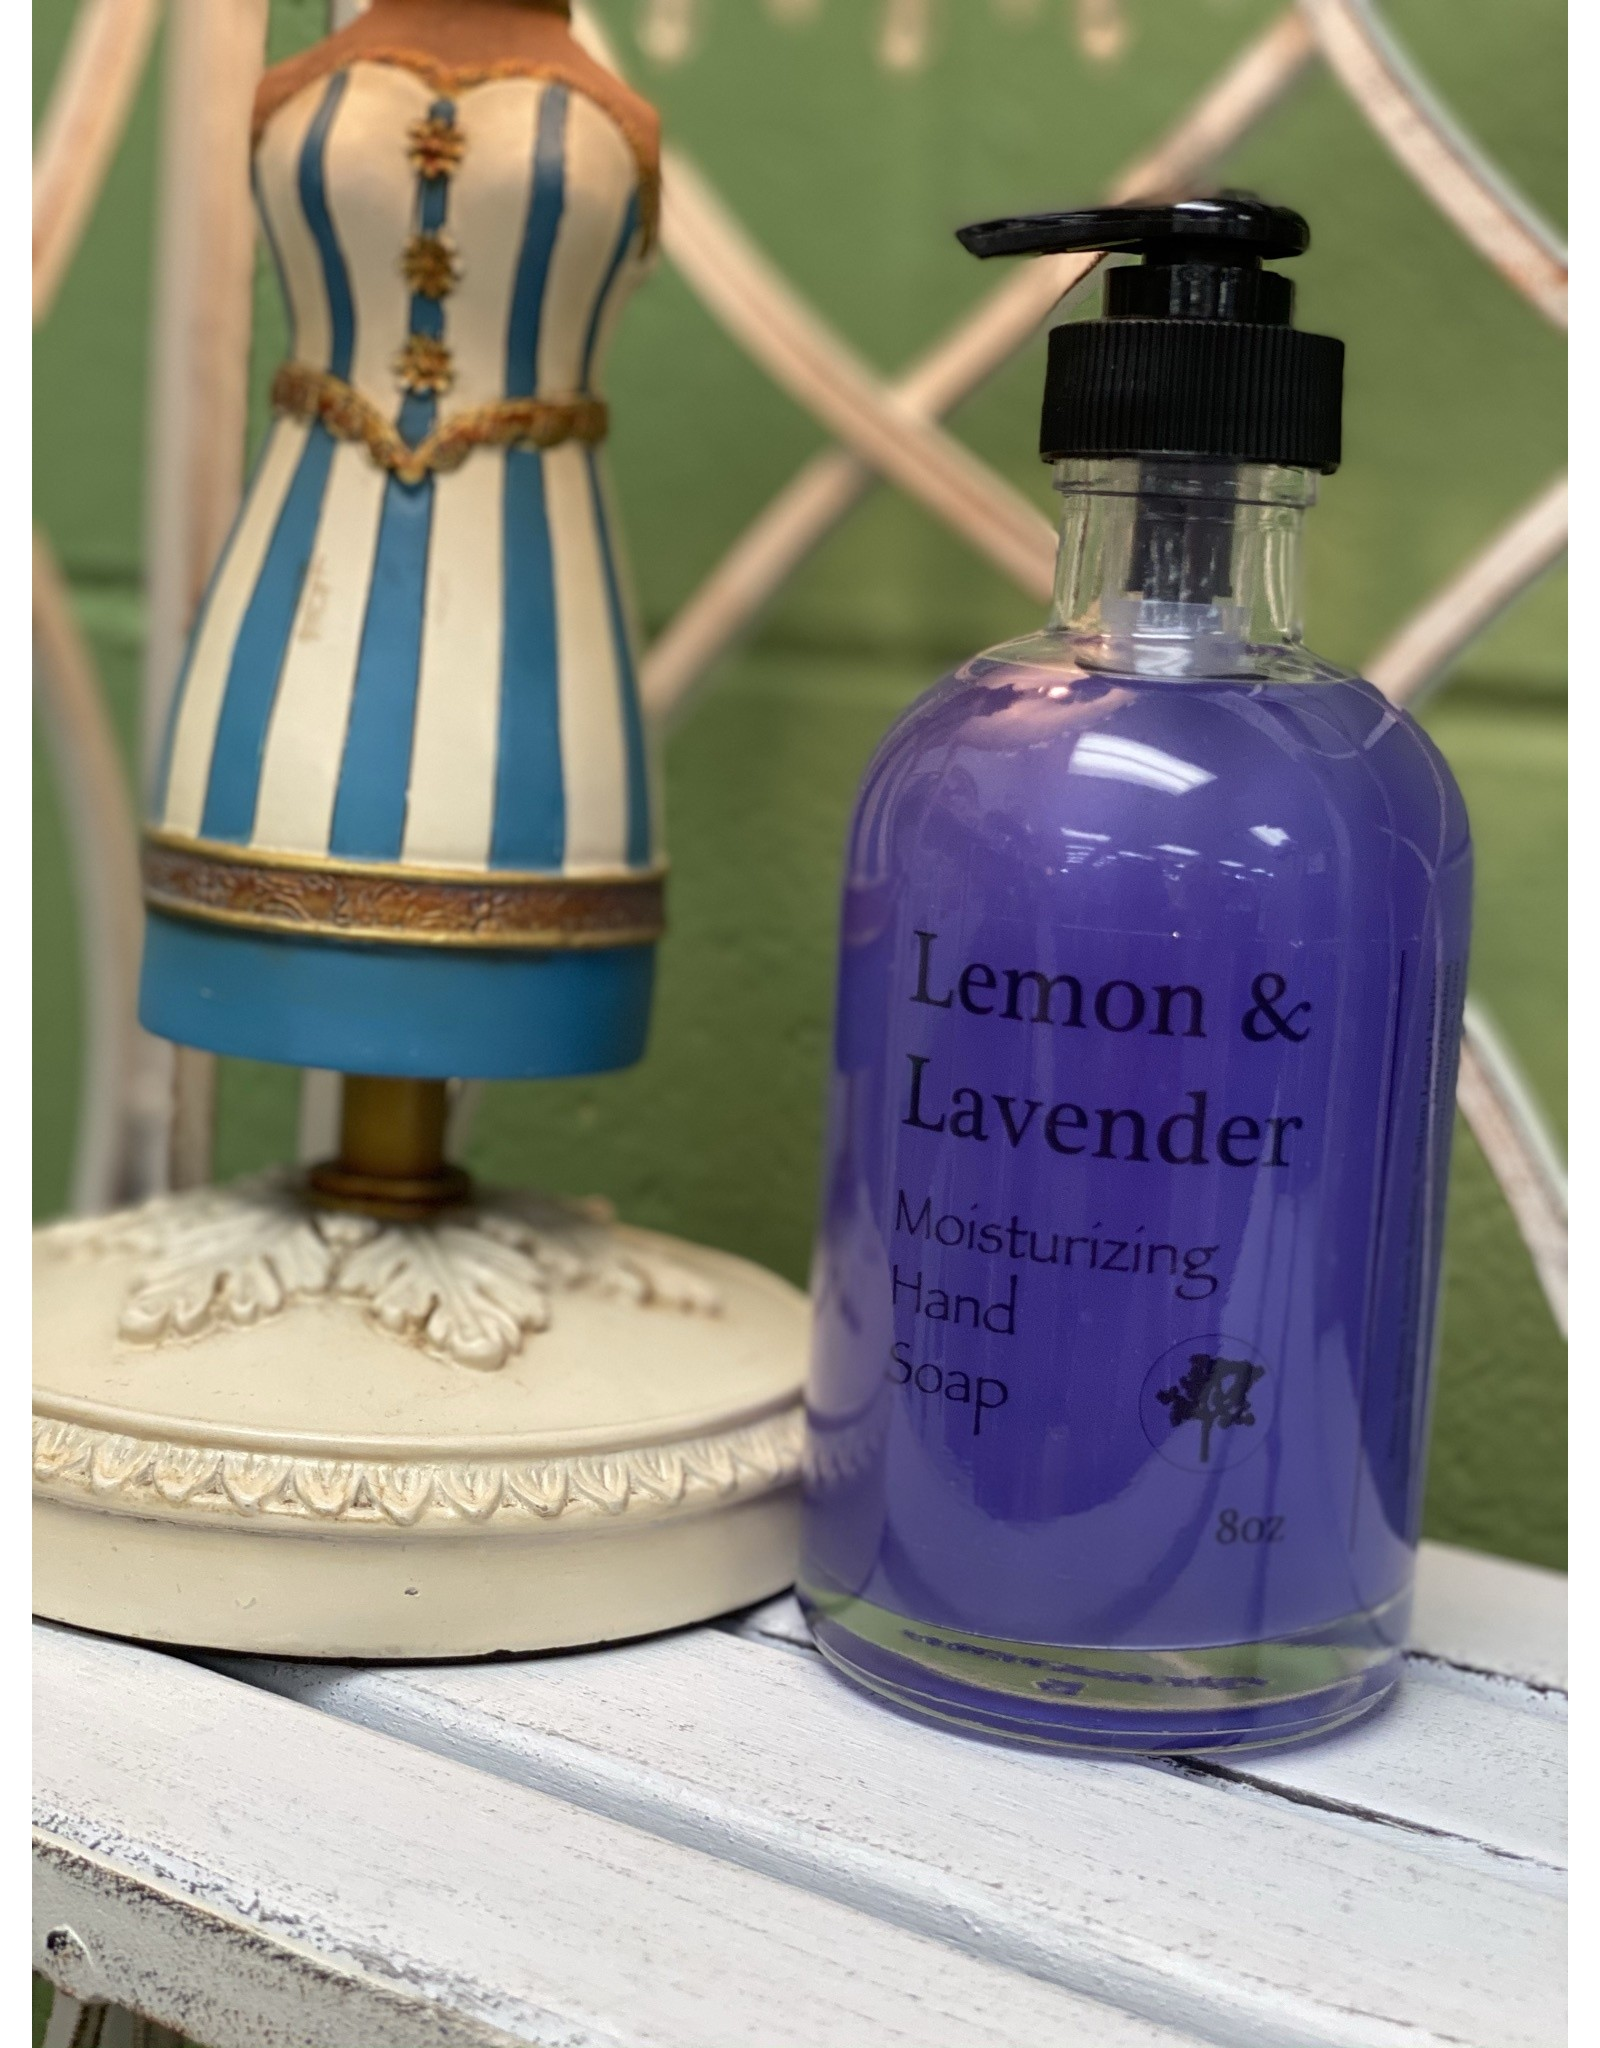 Lemon & Lavender Moisturizing Hand Soap 8oz